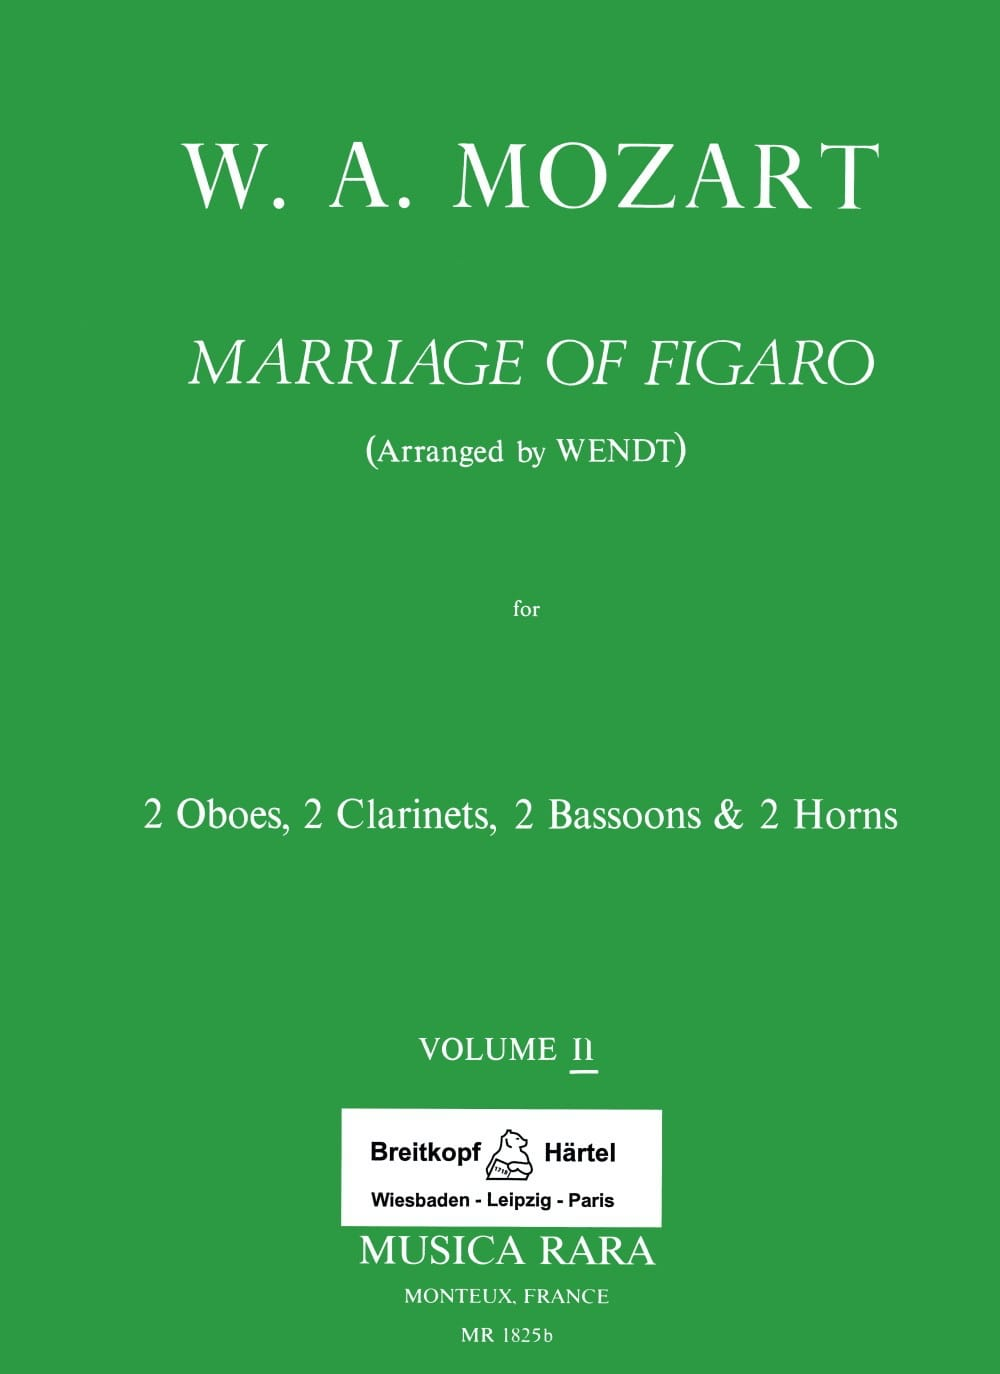 MOZART - The Nozze di Figaro Volume 2 - Harmoniemusik - Score Parts - Partition - di-arezzo.co.uk